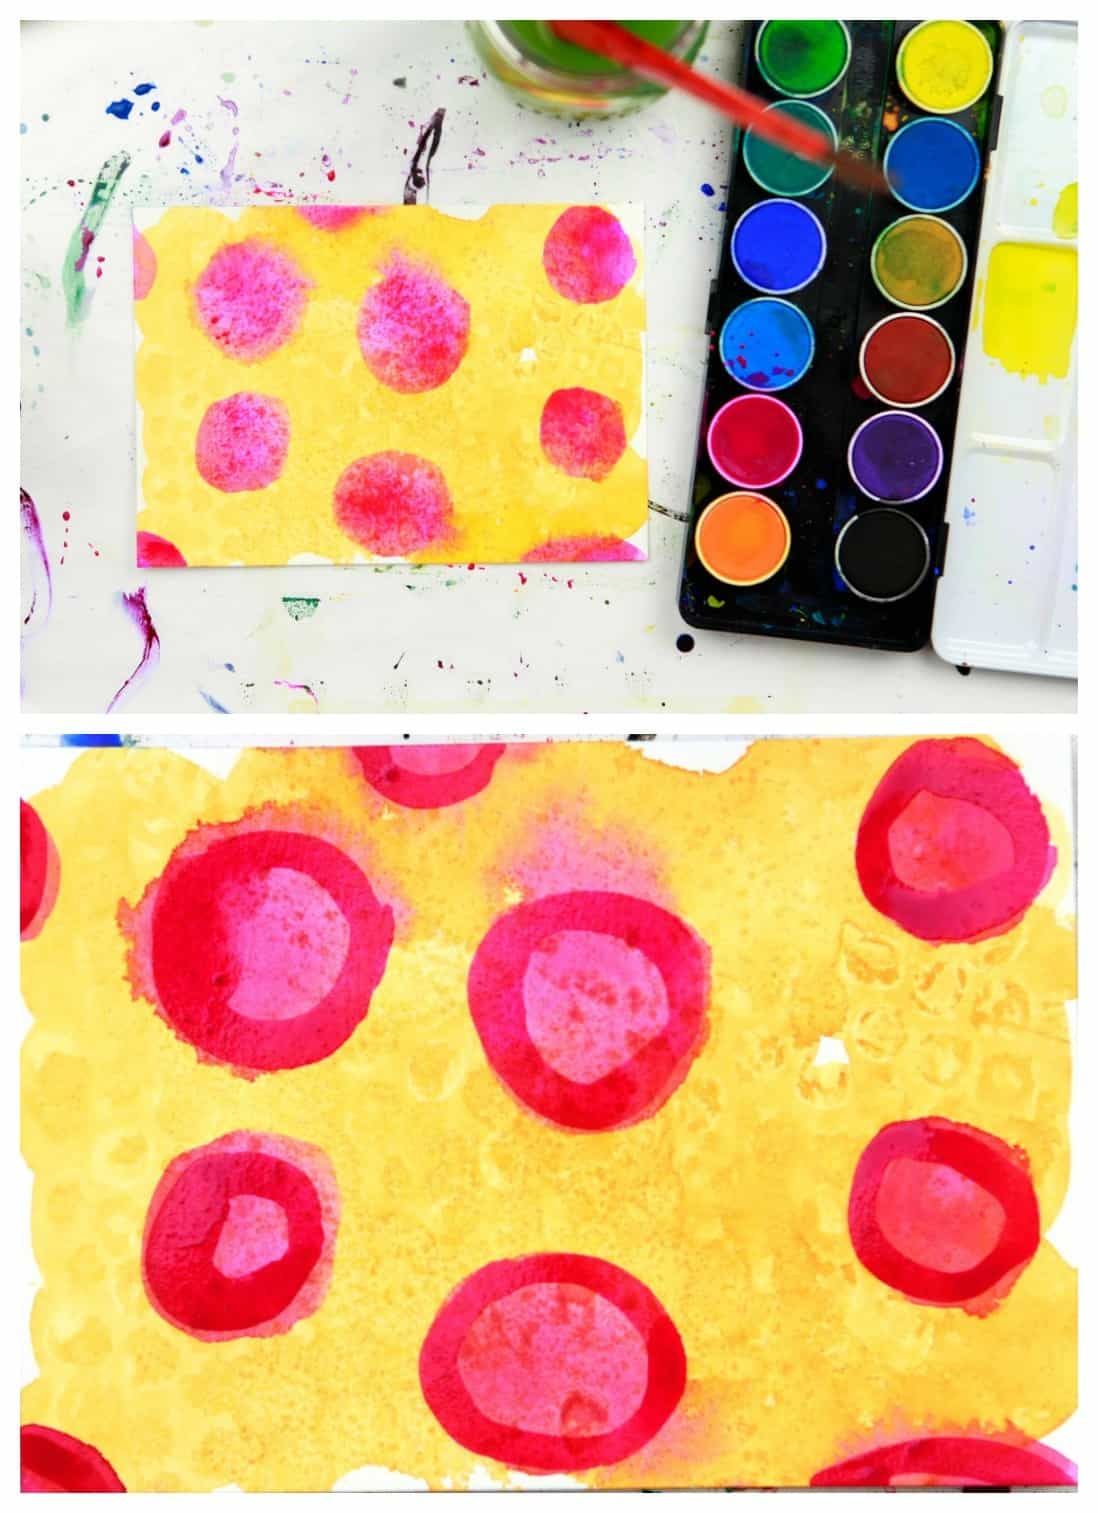 wet on wet watercolor pink circles on yellow background